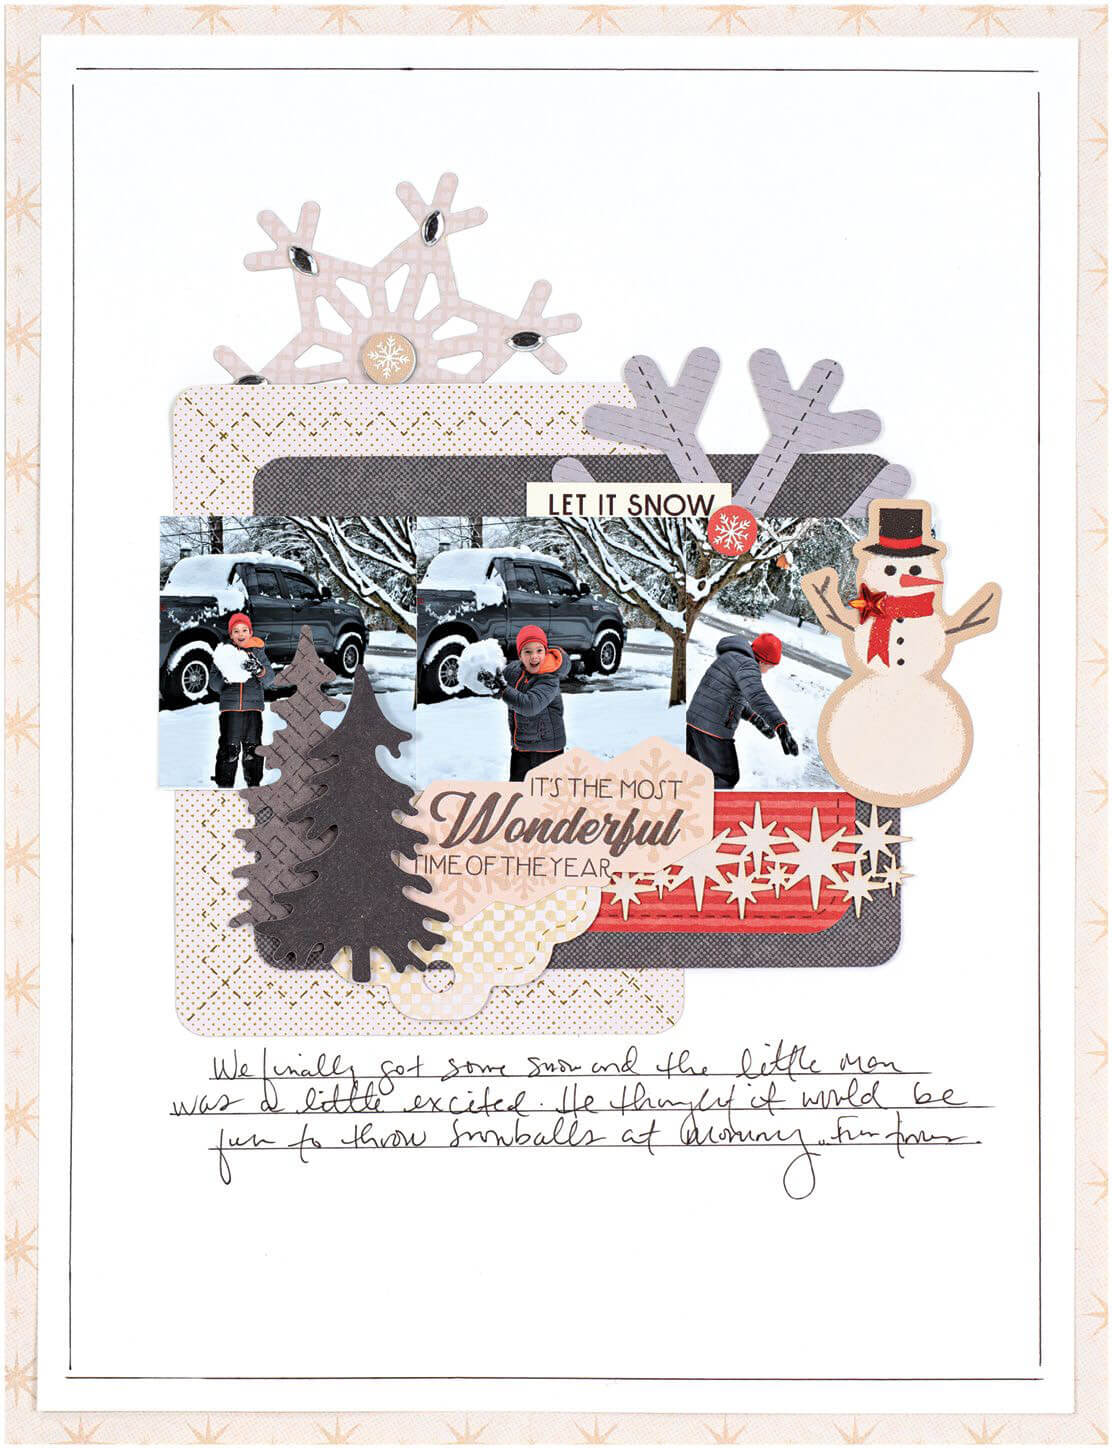 Scrapbook & Cards Today - Winter 2019 - It's The Most Wonderful Time of the Year layout by Nicole Martel